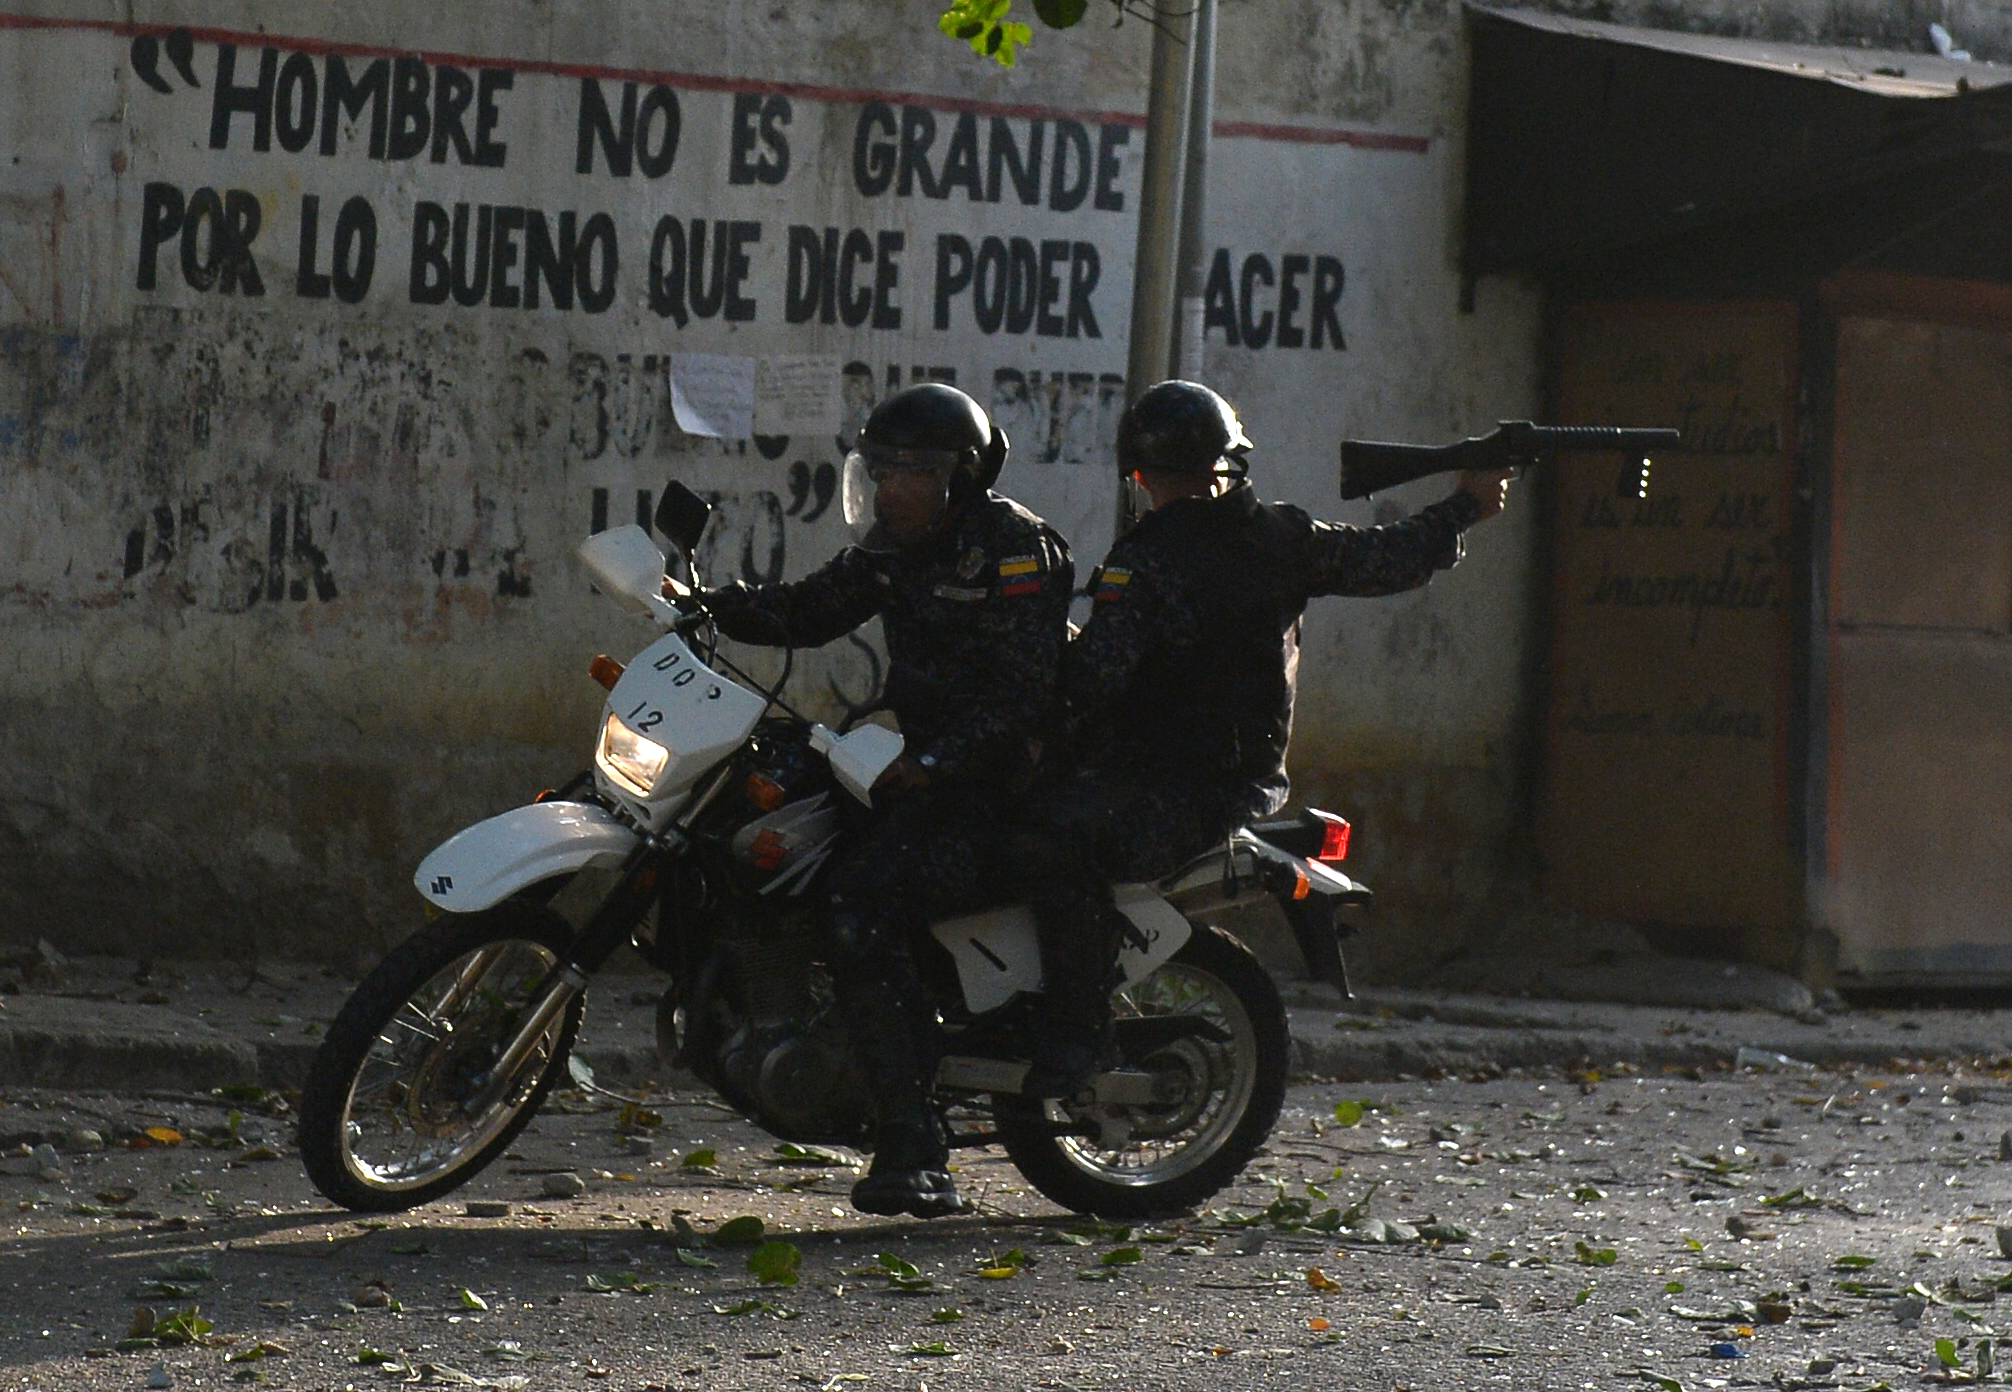 TOPSHOT - A riot policeman on a motorcycle points his gun during clashes with anti-government demonstrators in the neighborhood of Los Mecedores, in Caracas, on January 21, 2019. - A group of soldiers rose up against Venezuela's President Nicolas Maduro at a command post in northern Caracas on Monday, but were quickly arrested after posting an appeal for public support in a video, the government said. (Photo by Federico Parra / AFP) (Photo credit should read FEDERICO PARRA/AFP/Getty Images)